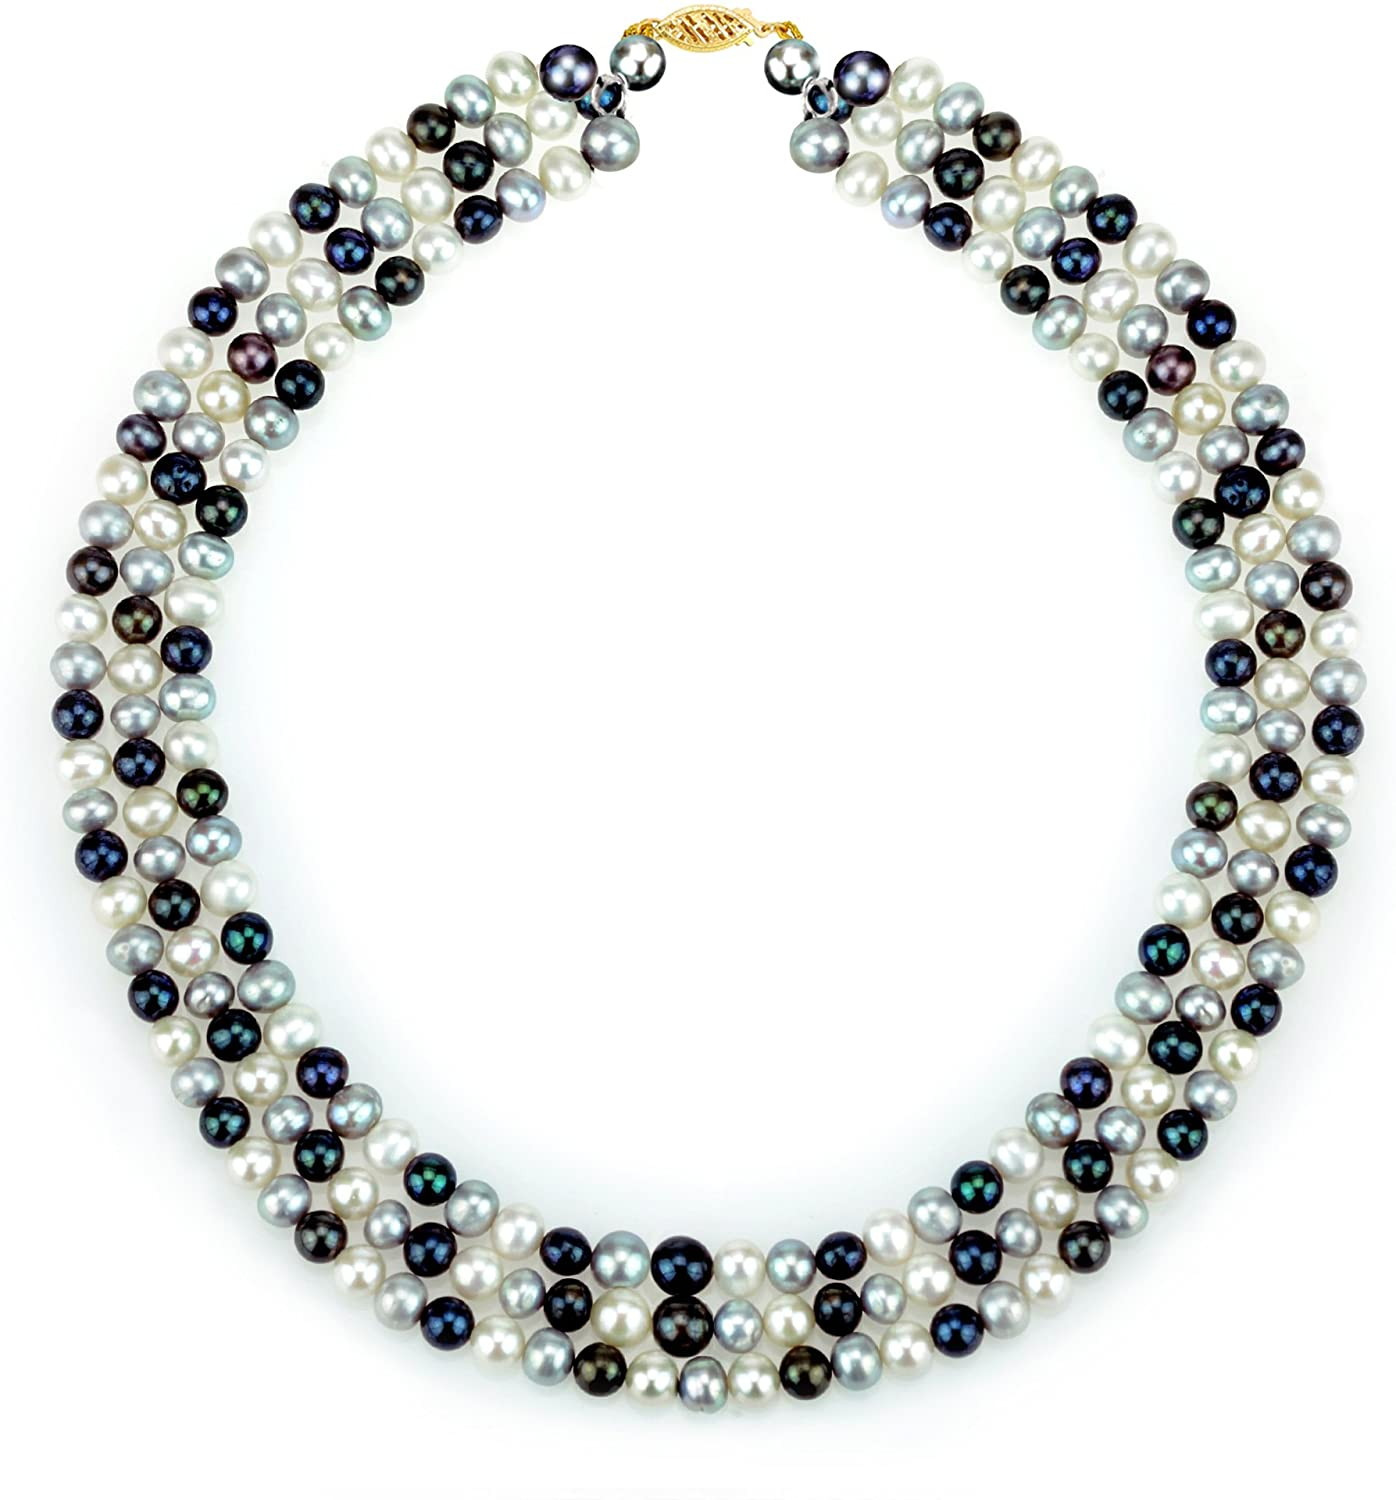 La Regis Jewelry 14K Yellow Gold 6.5-7mm Freshwater Cultured Pearl 3-Rows Necklace 18